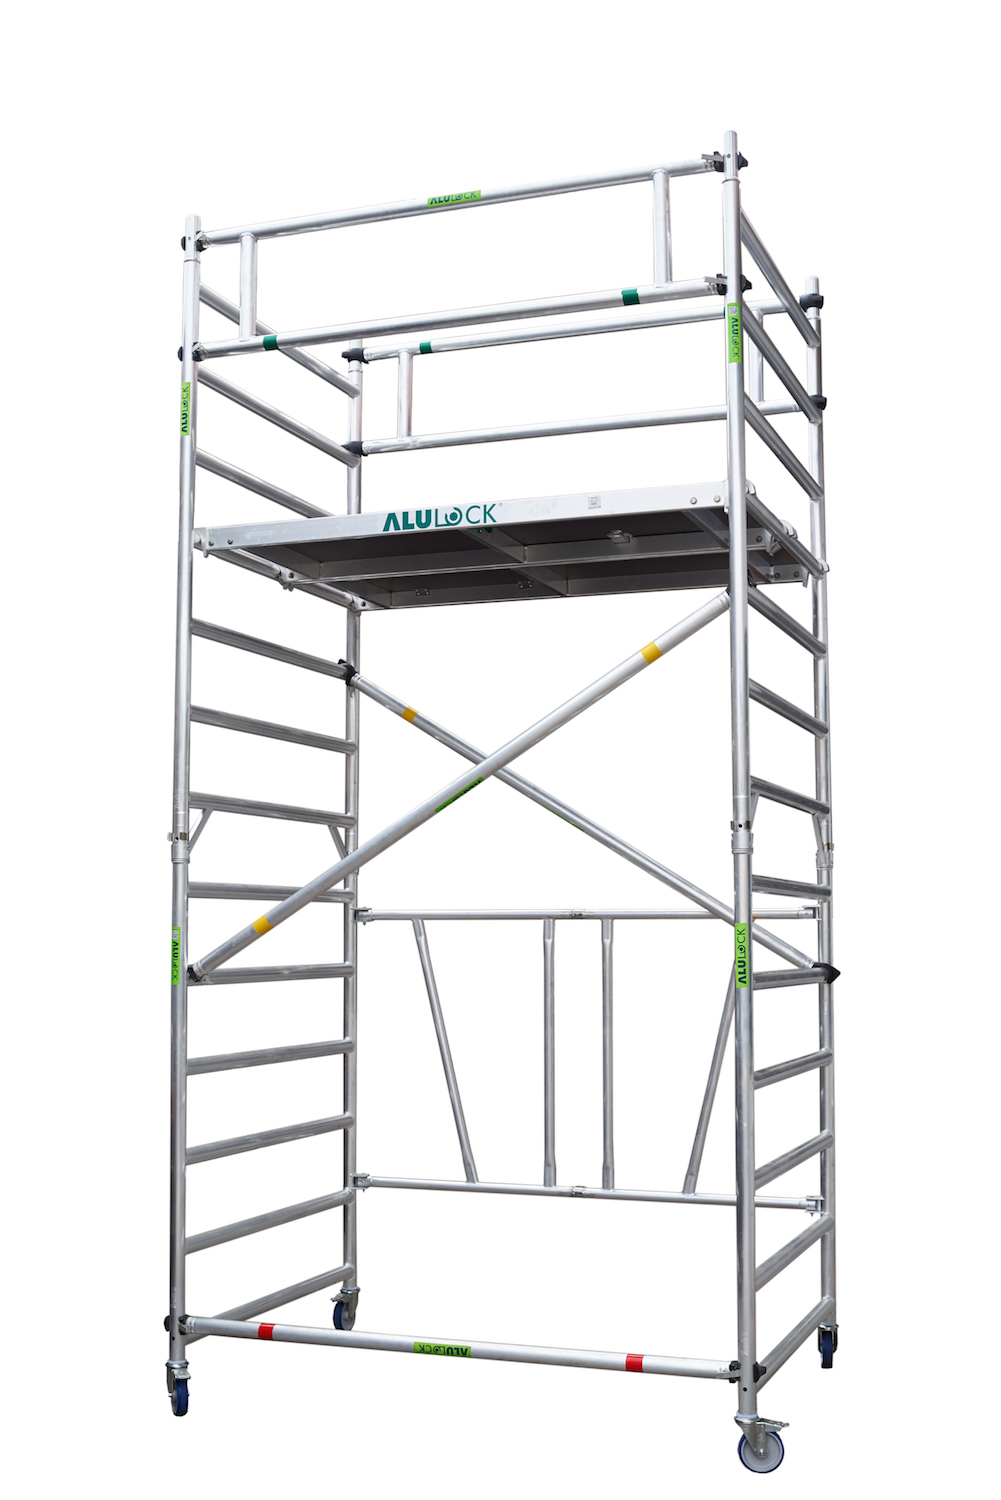 Folding Scaffold 135 x 180 cm. Working height: 4.65 m.